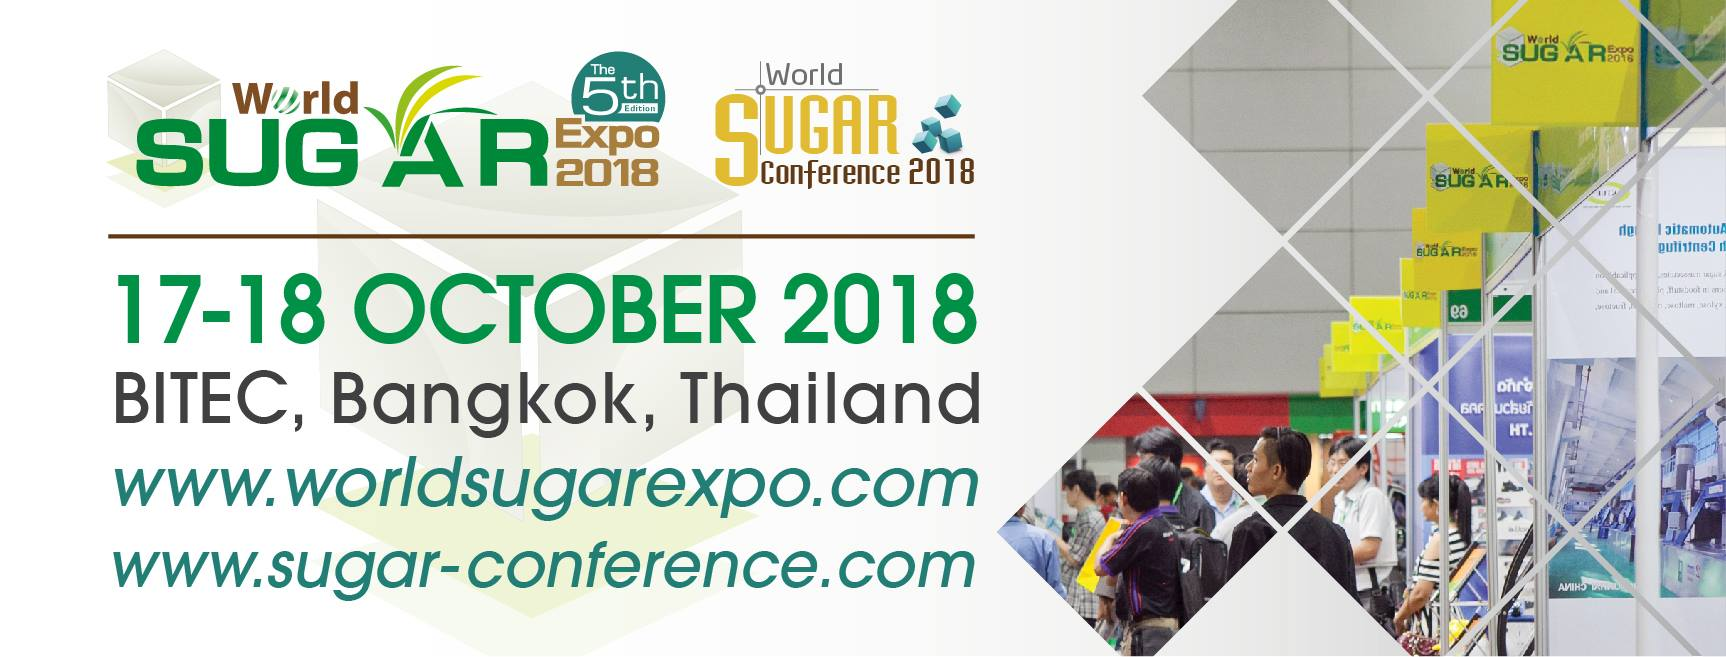 World Sugar Expo & Conference 2018 : 17-19 October 2018